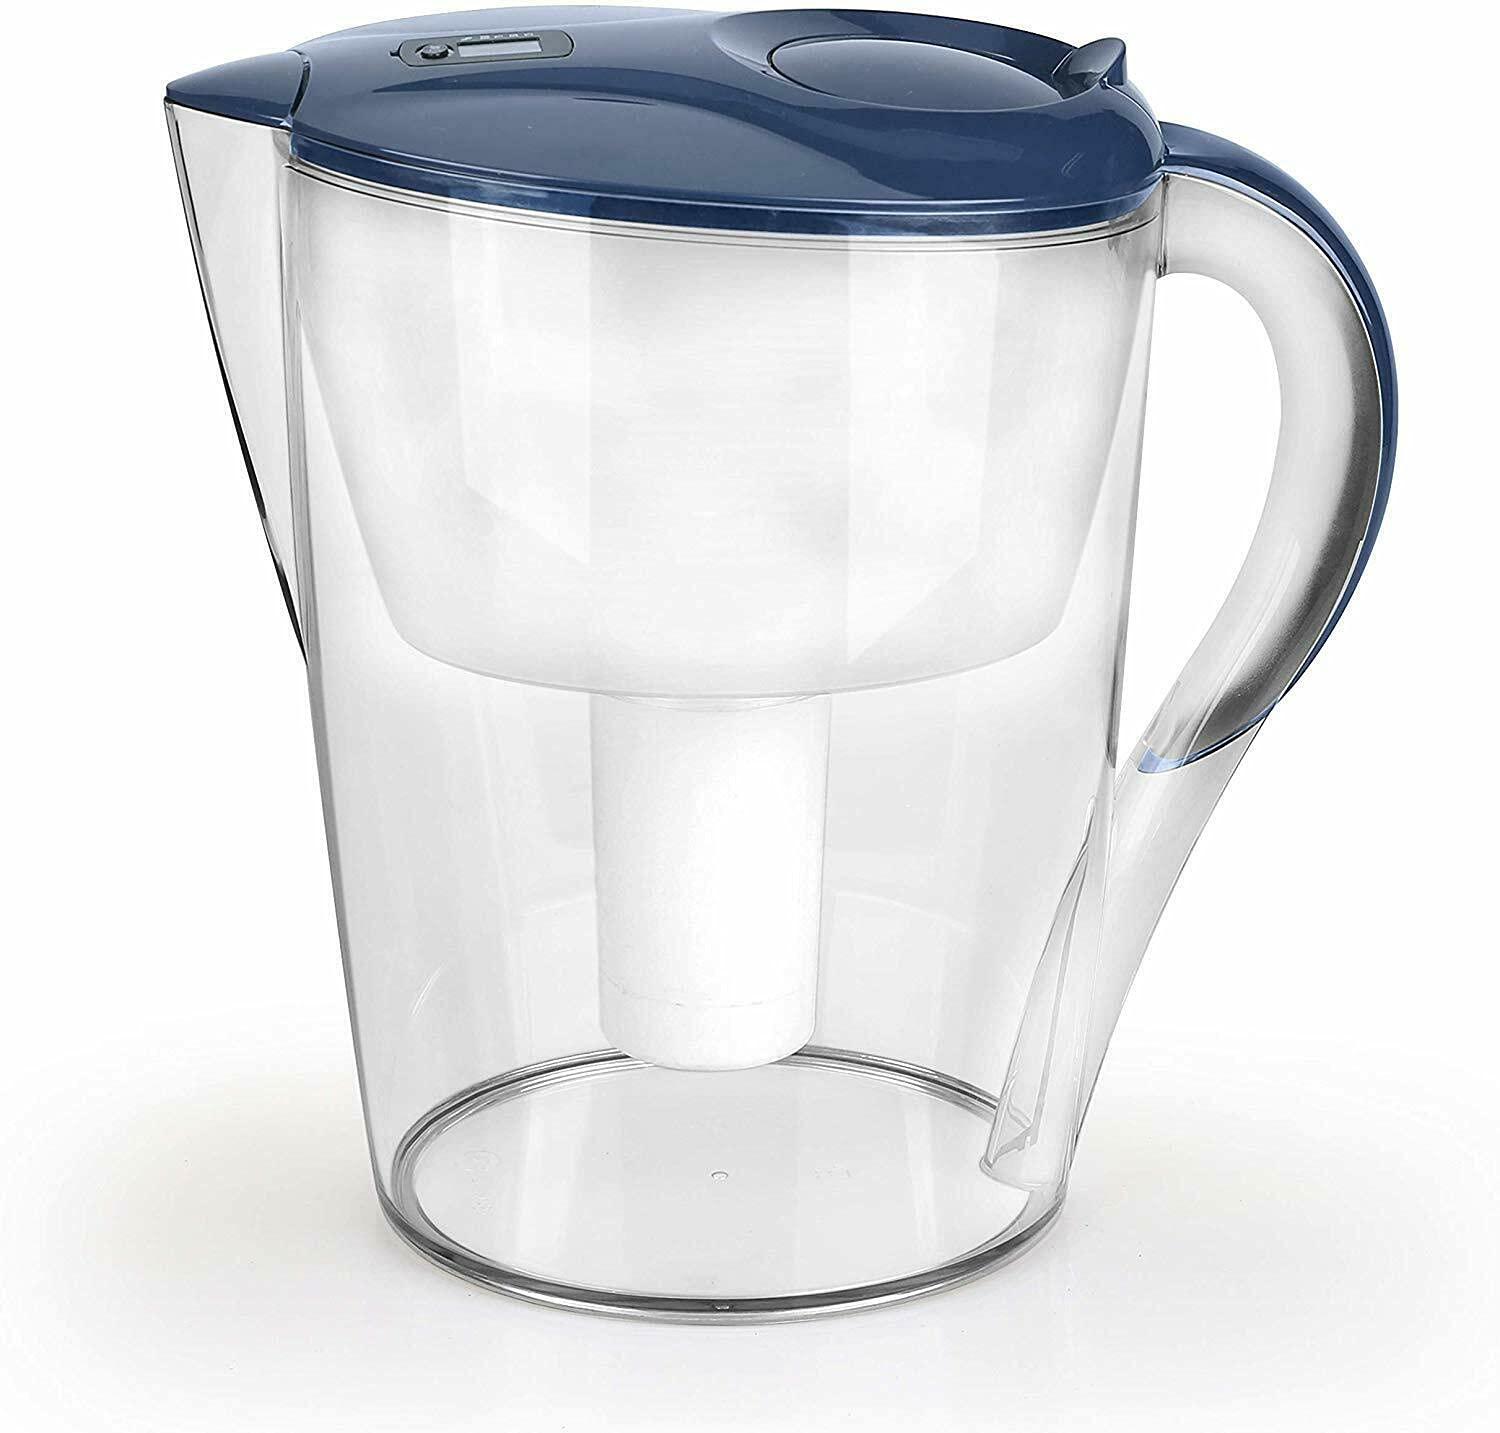 S-Rover Water Filter Pitcher 15-Cup Long-Lasting w Nashville-Davidson Mall Ranking TOP19 1Filter 200